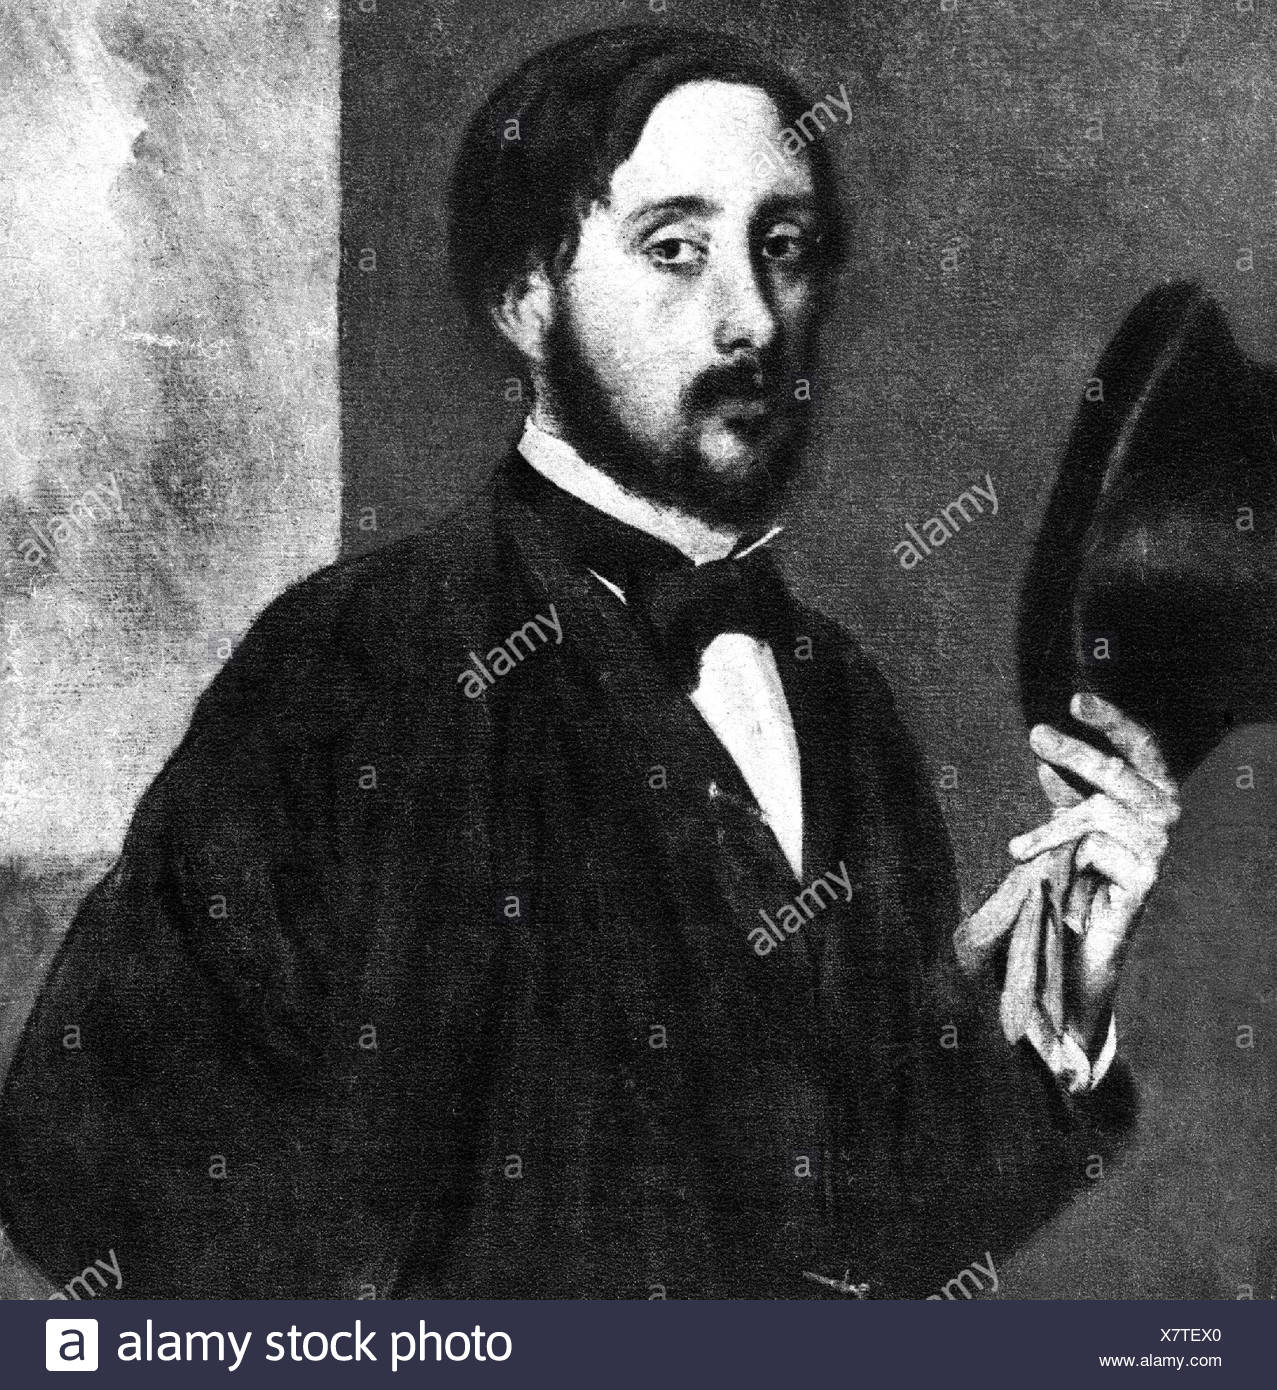 Degas, Edgar, 19.6.1834 - 26.9.1917, French painter, self-half length, Additional-Rights-Clearances-NA - Stock Image